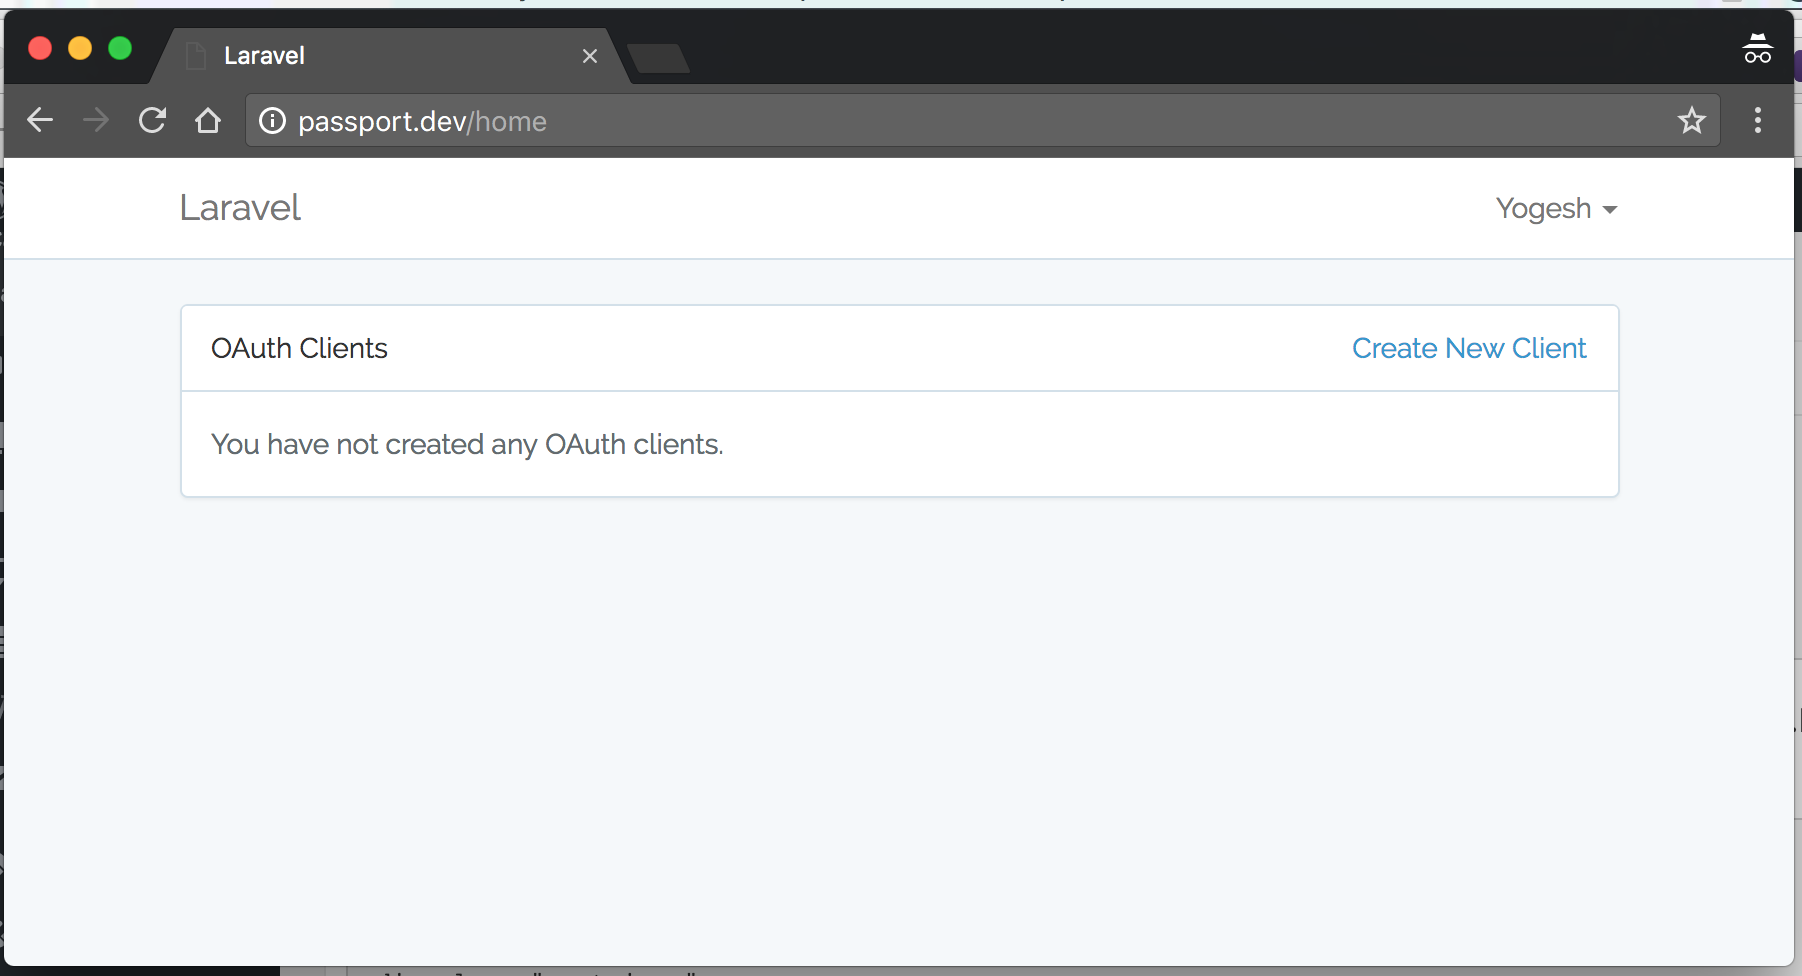 OAuth Clients Component loaded